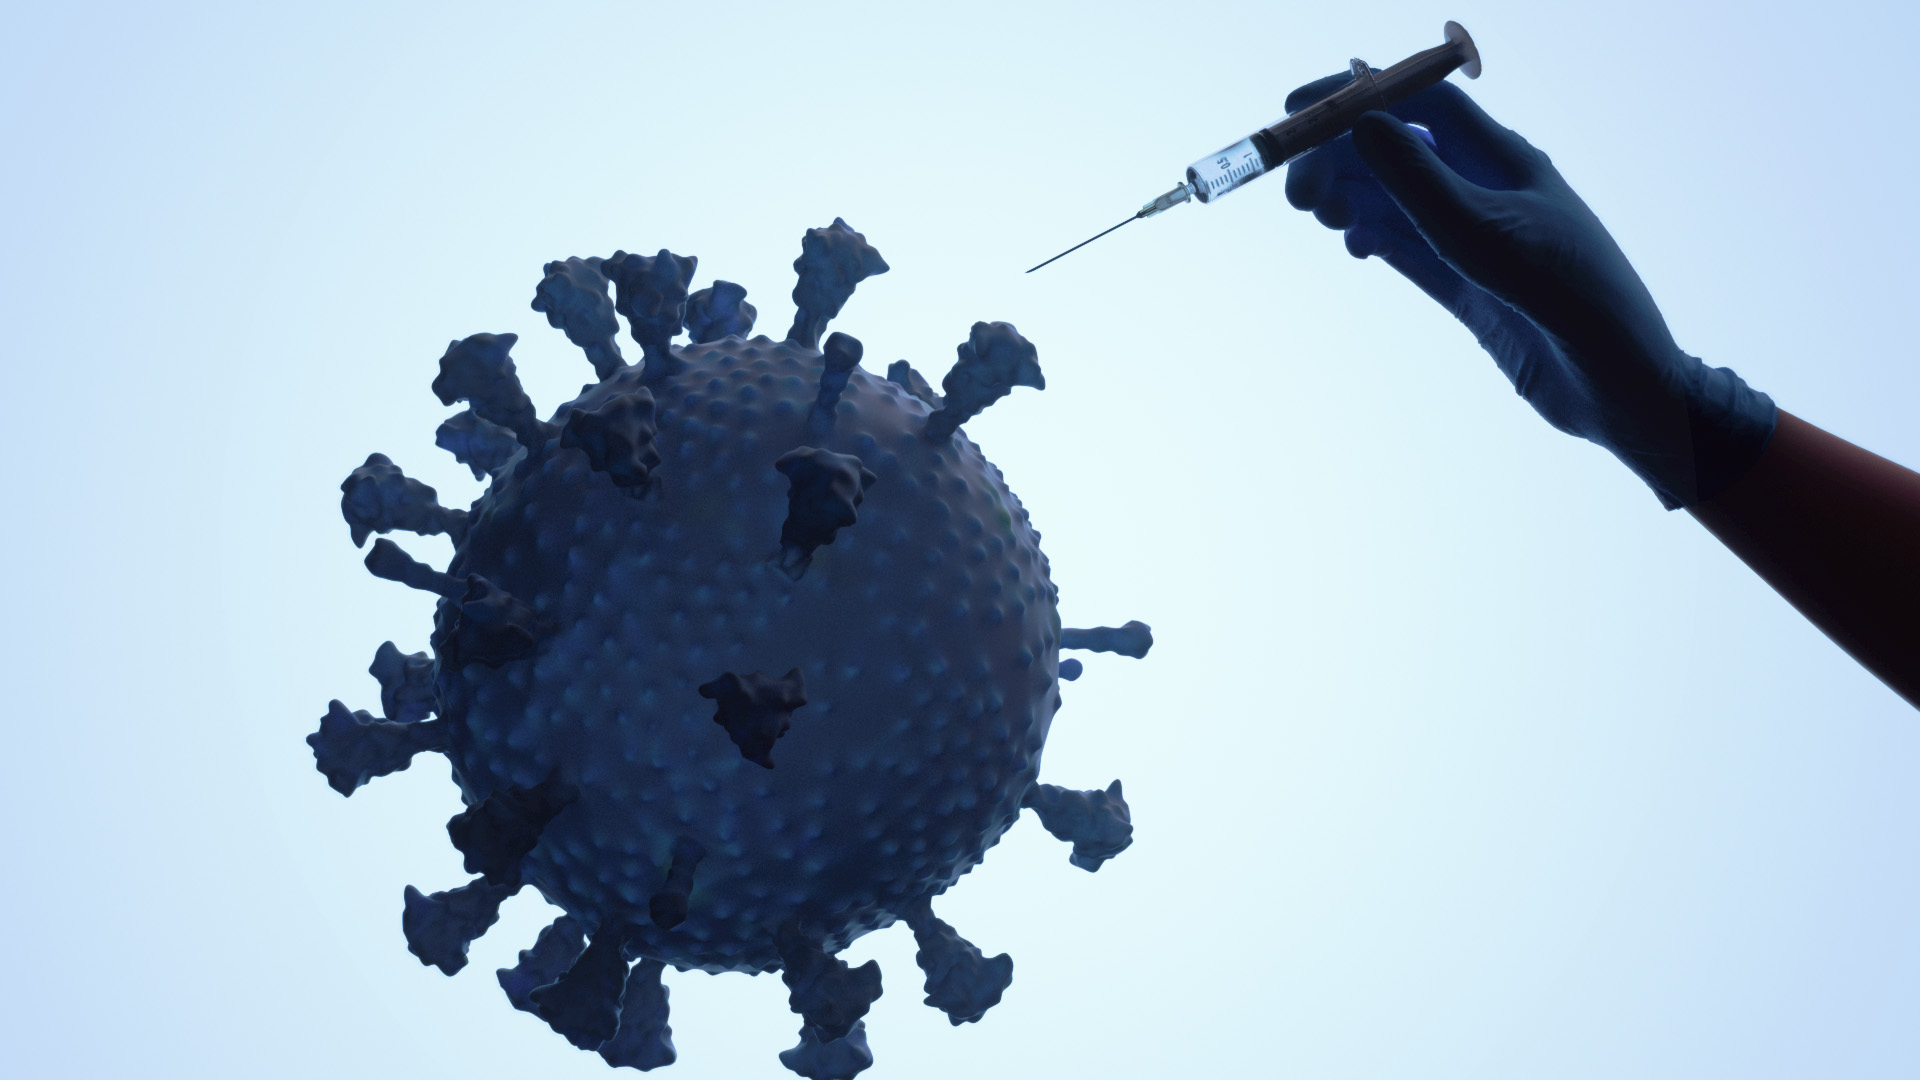 3D animation of SARS-CoV-2 as a balloon getting popped by a glove hand holding a syringe